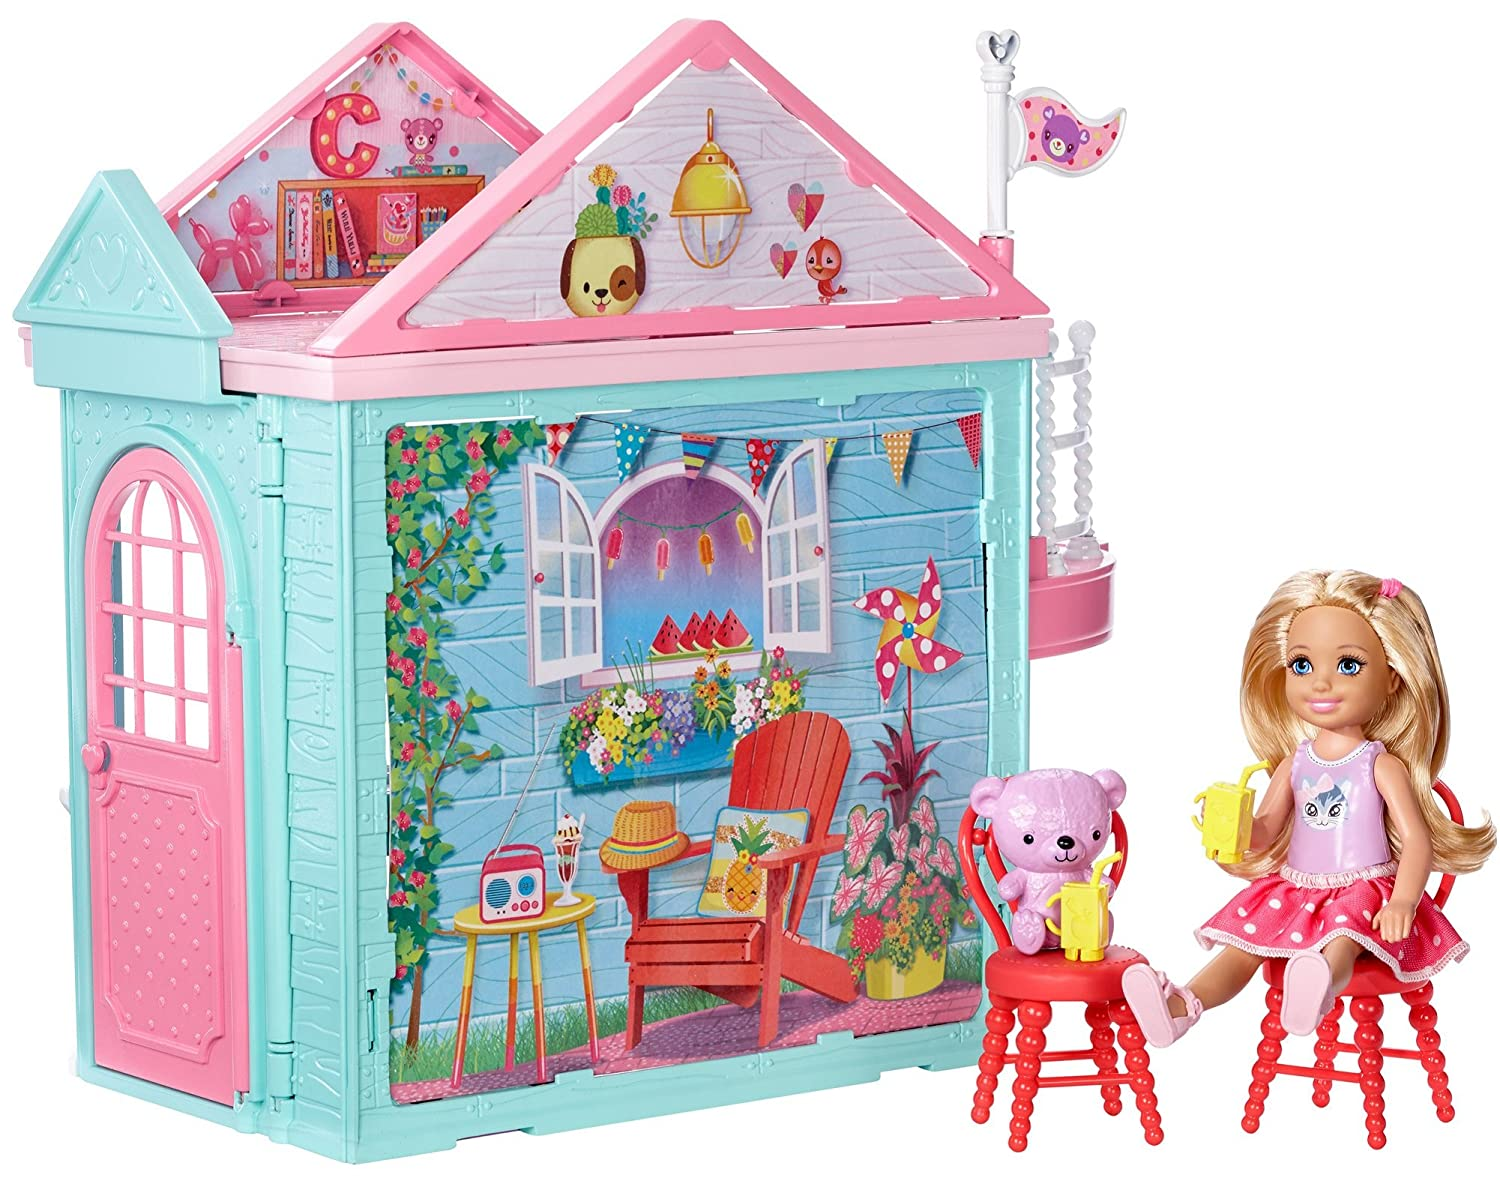 Amazon.com: Barbie Club Chelsea Clubhouse: Toys & Games